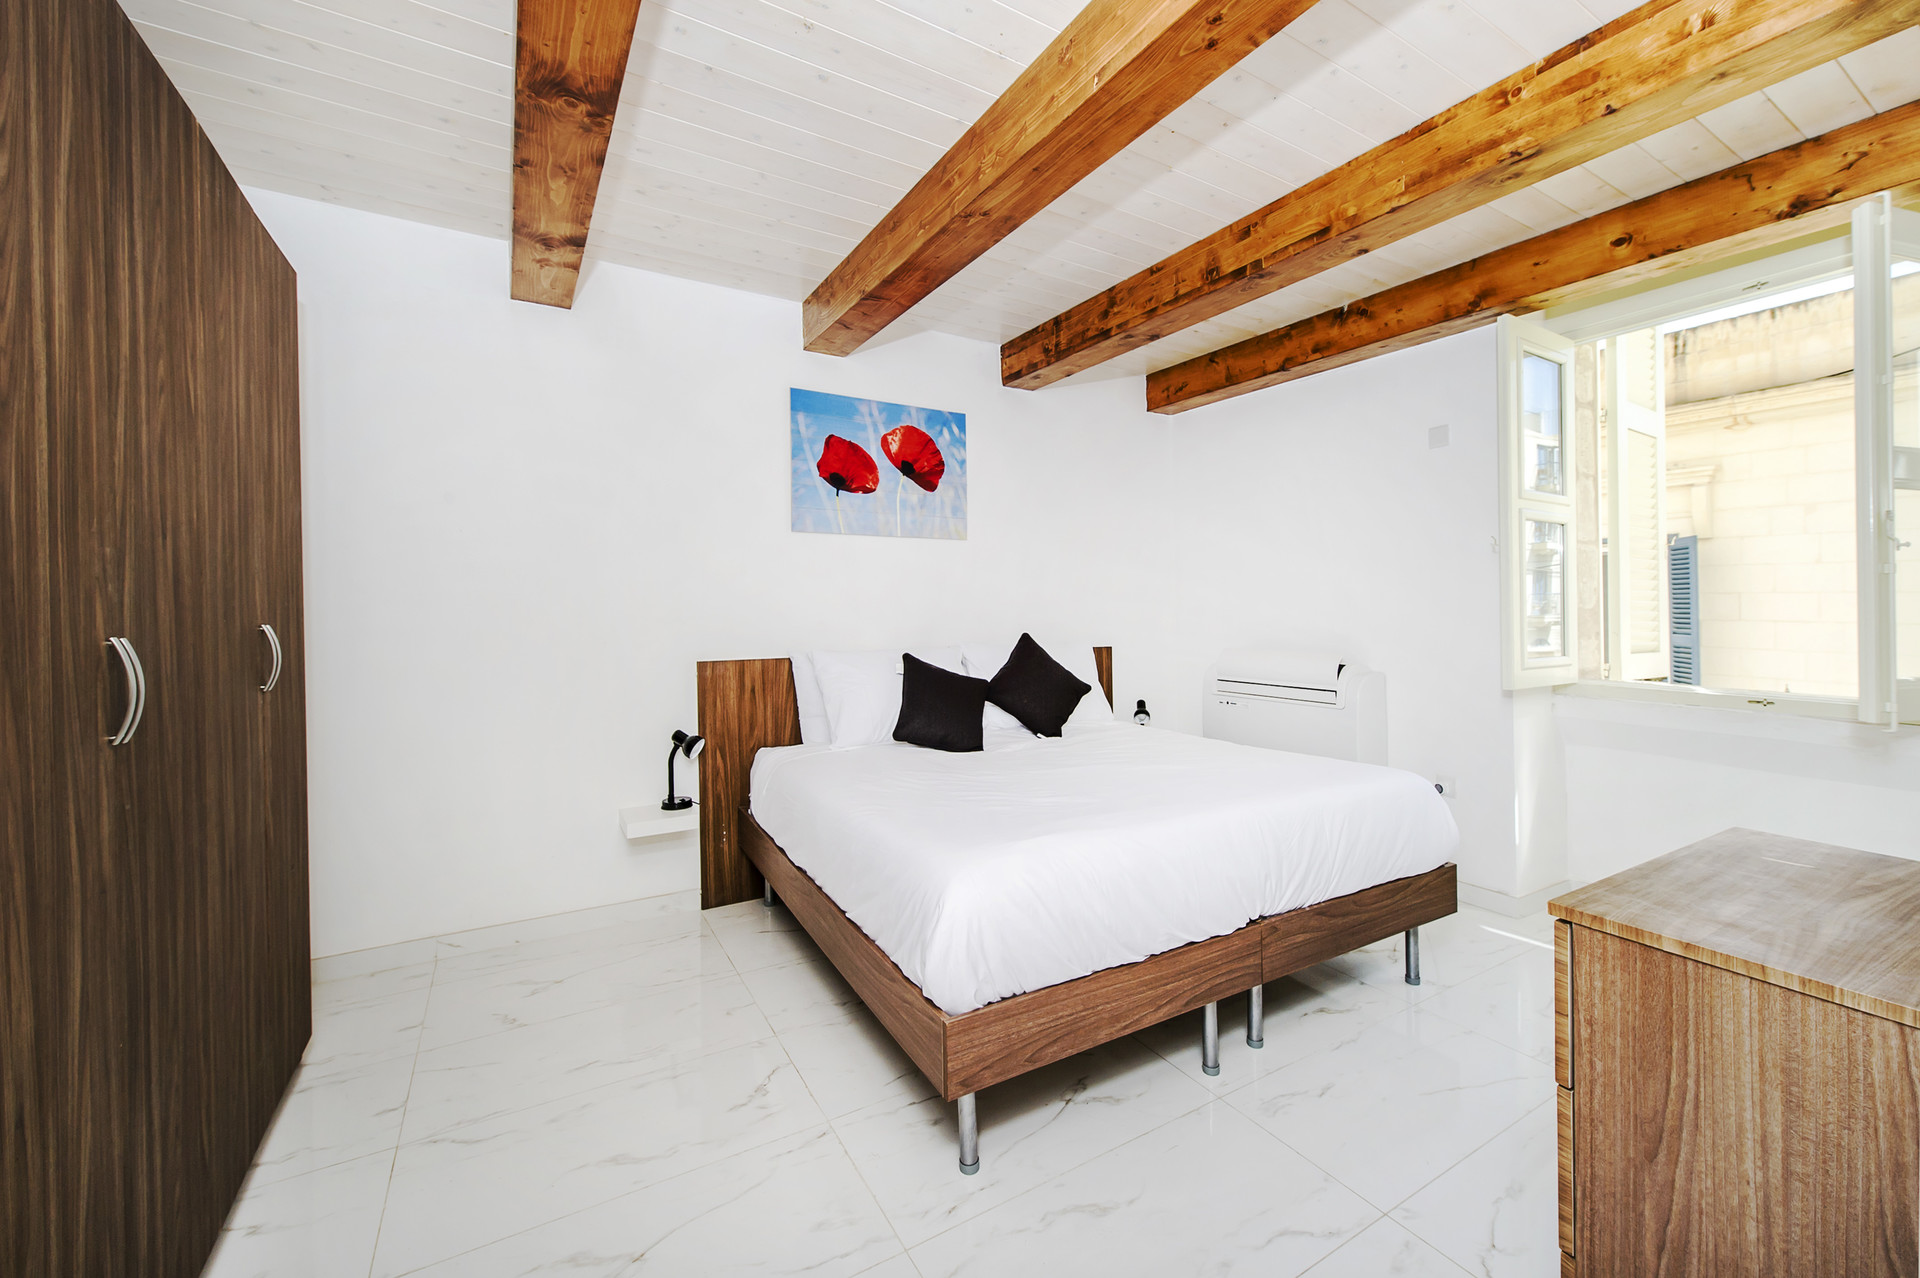 Sliema_Spacious private bedroom full of light! :)